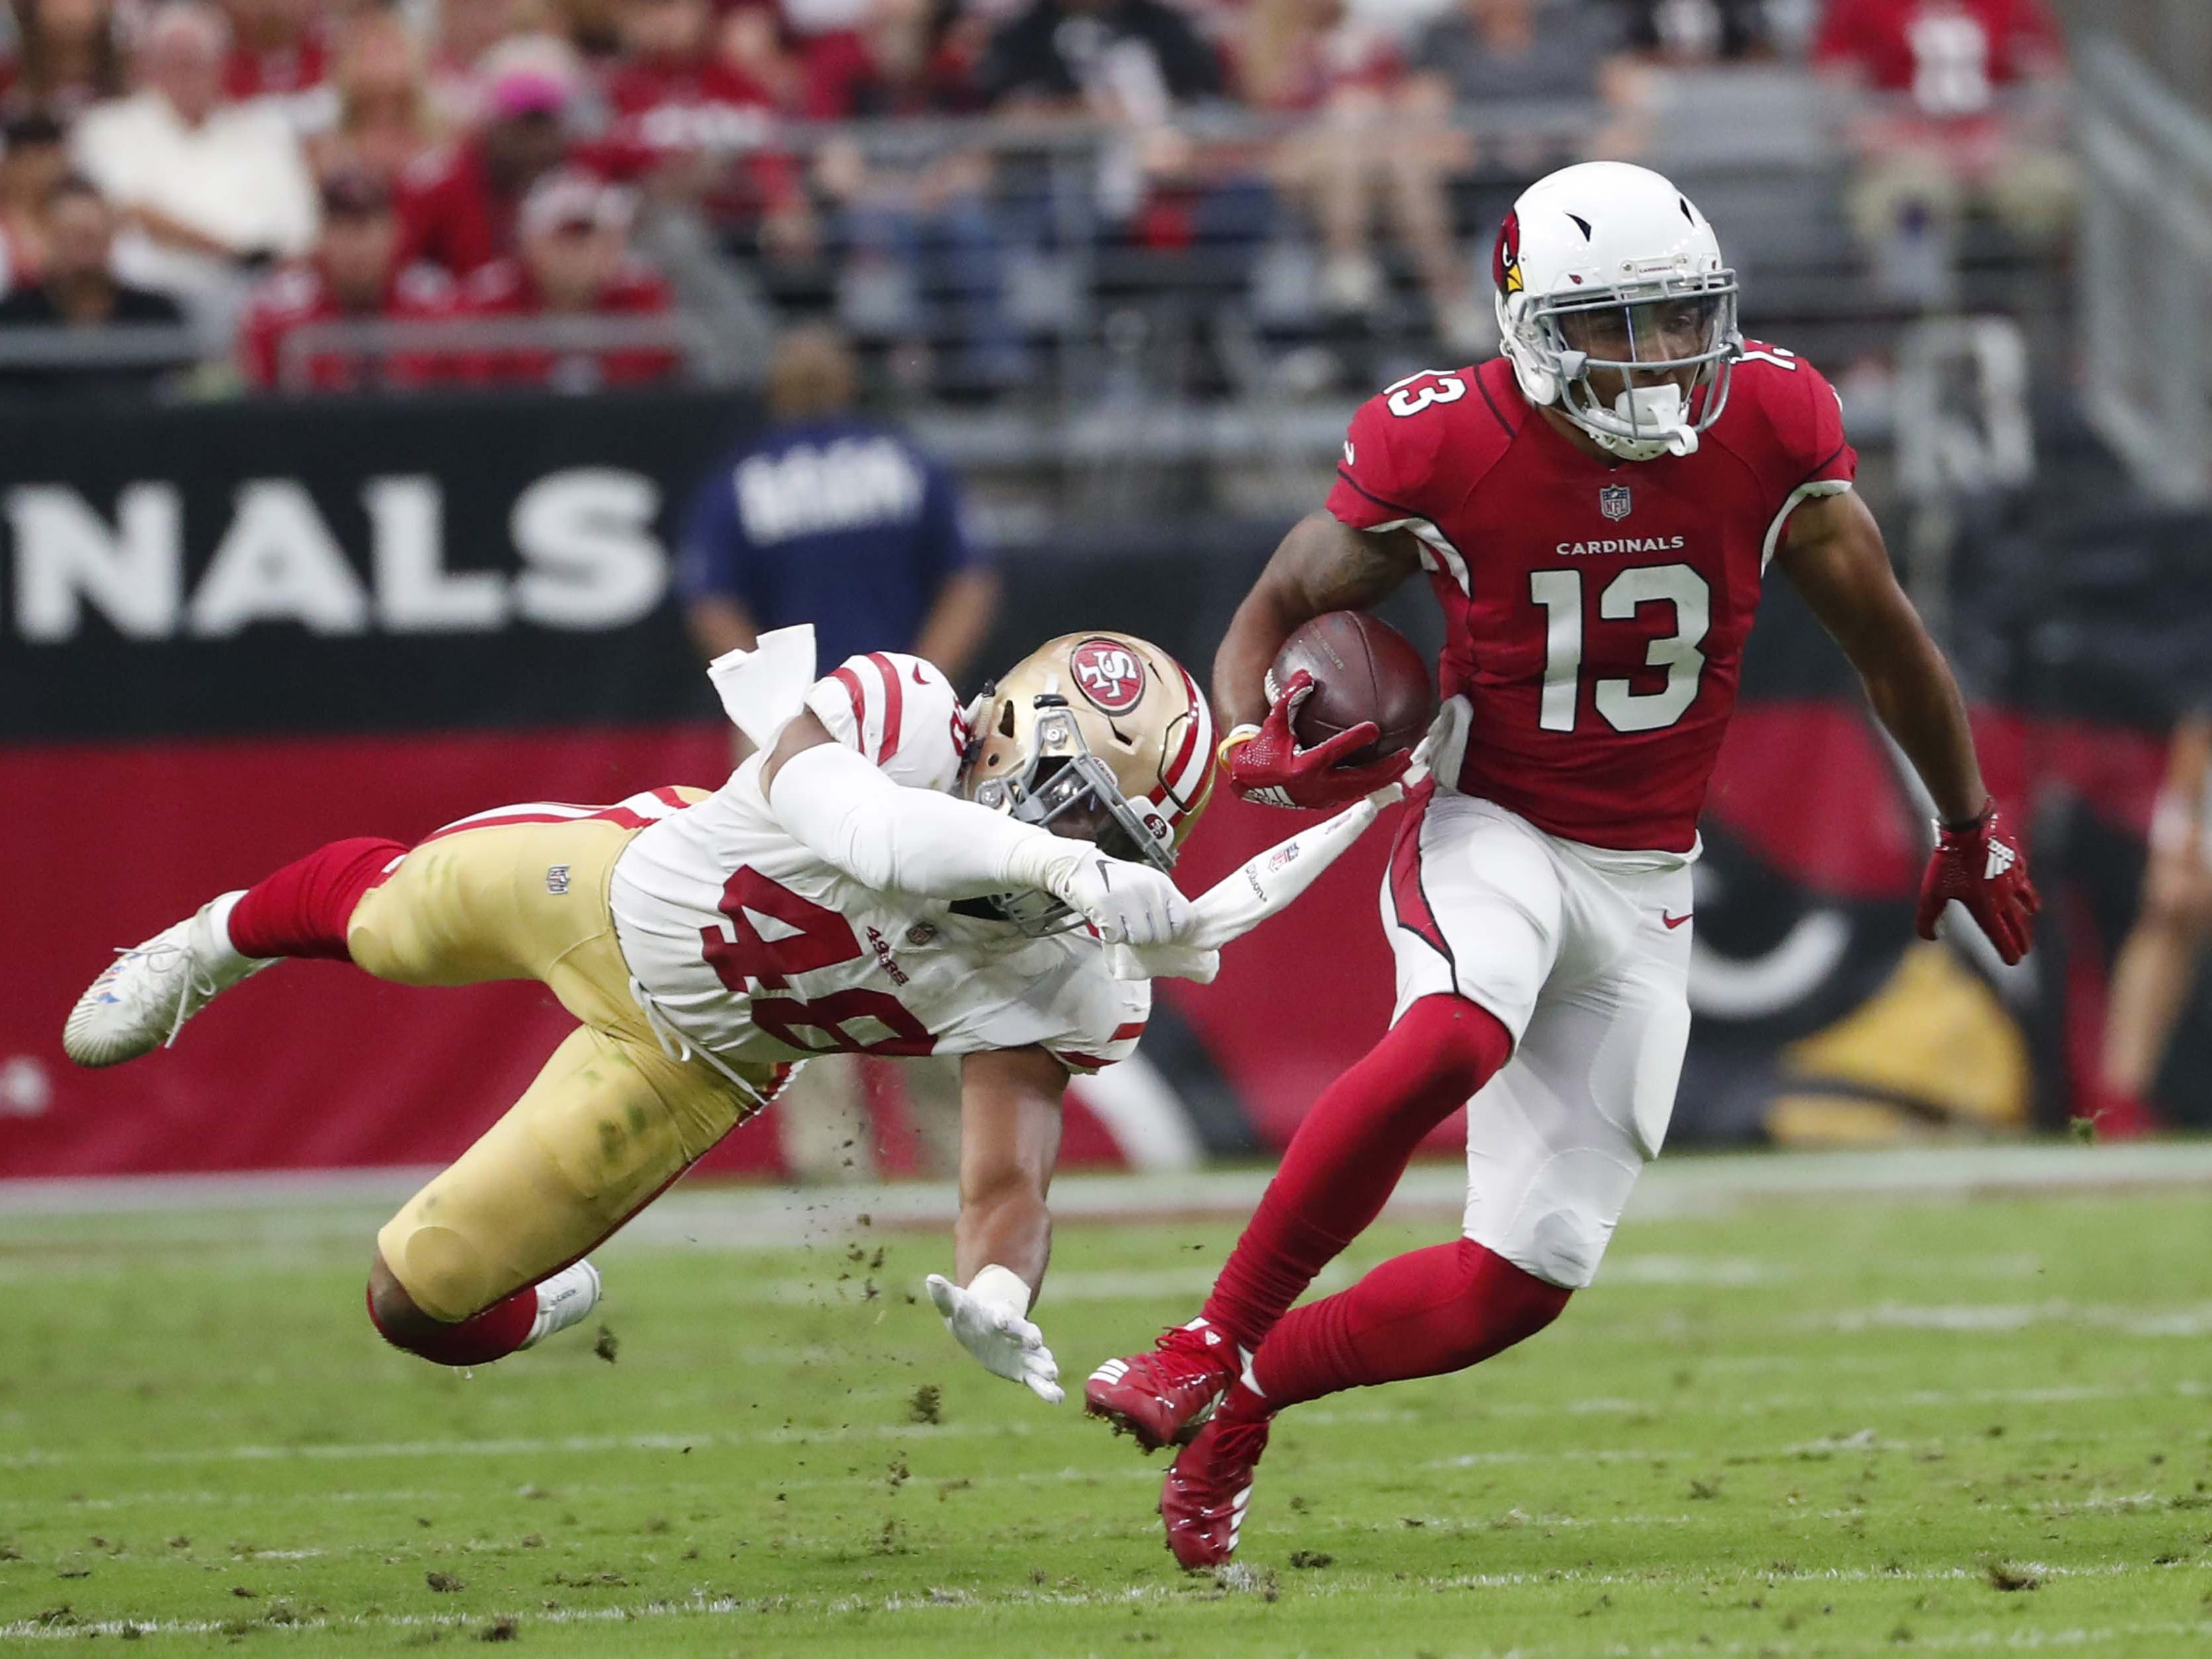 Arizona Cardinals wide receiver Christian Kirk (13)escapes a tackle by San Francisco 49ers linebacker Fred Warner (48) after a catch In the second quarter during NFL action against the San Francisco 49ers on Oct. 28 at State Farm Stadium.